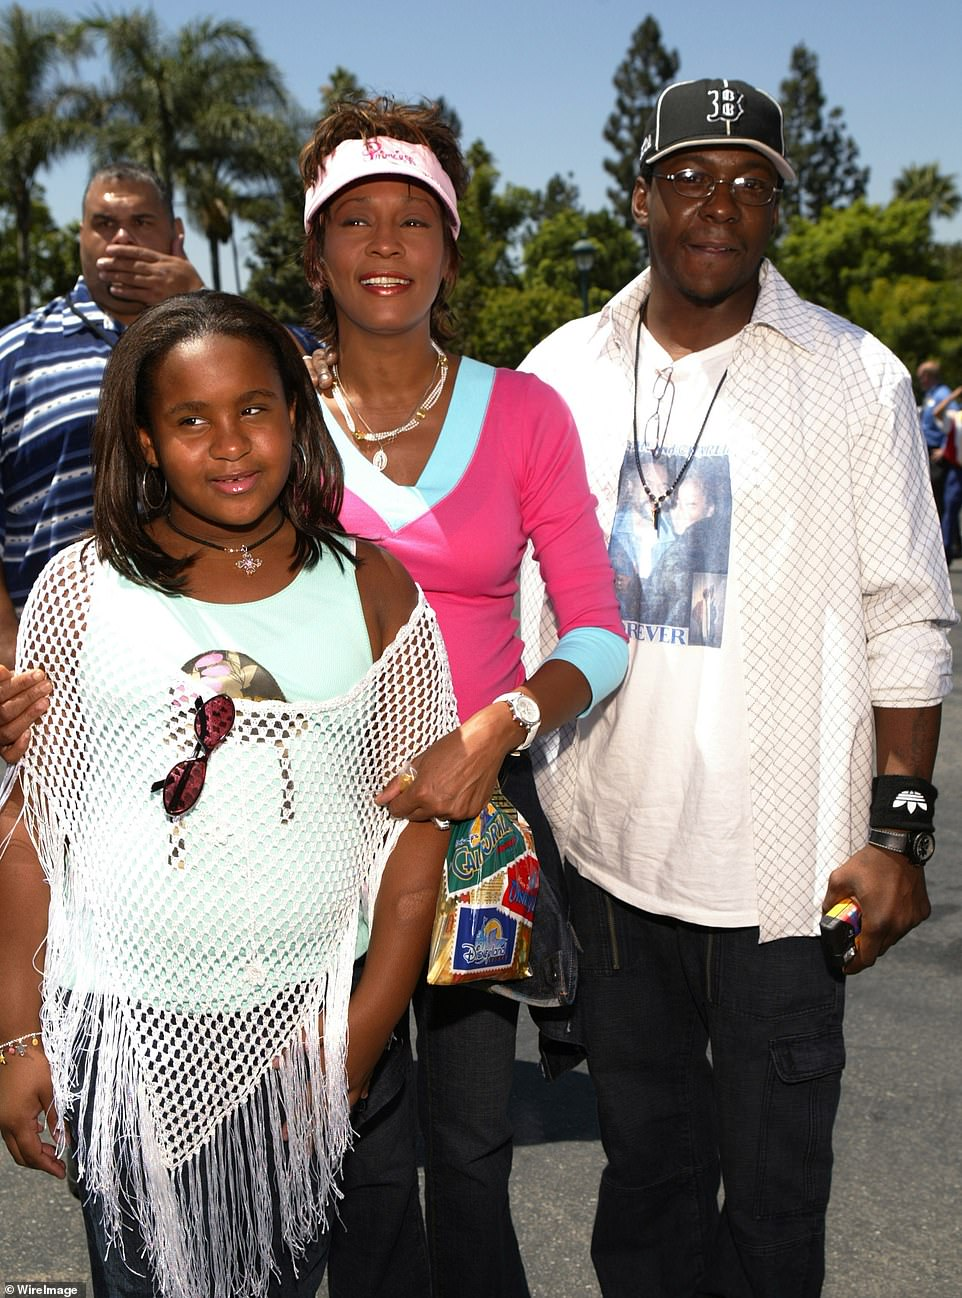 Gone too soon: In late 2016, Bobbi Kristina's ex-boyfriend Nick Gordon was found liable in a wrongful death lawsuit brought by the conservator of Bobbi Kristina's estate, Bedelia Hargrove (seen in 2004)